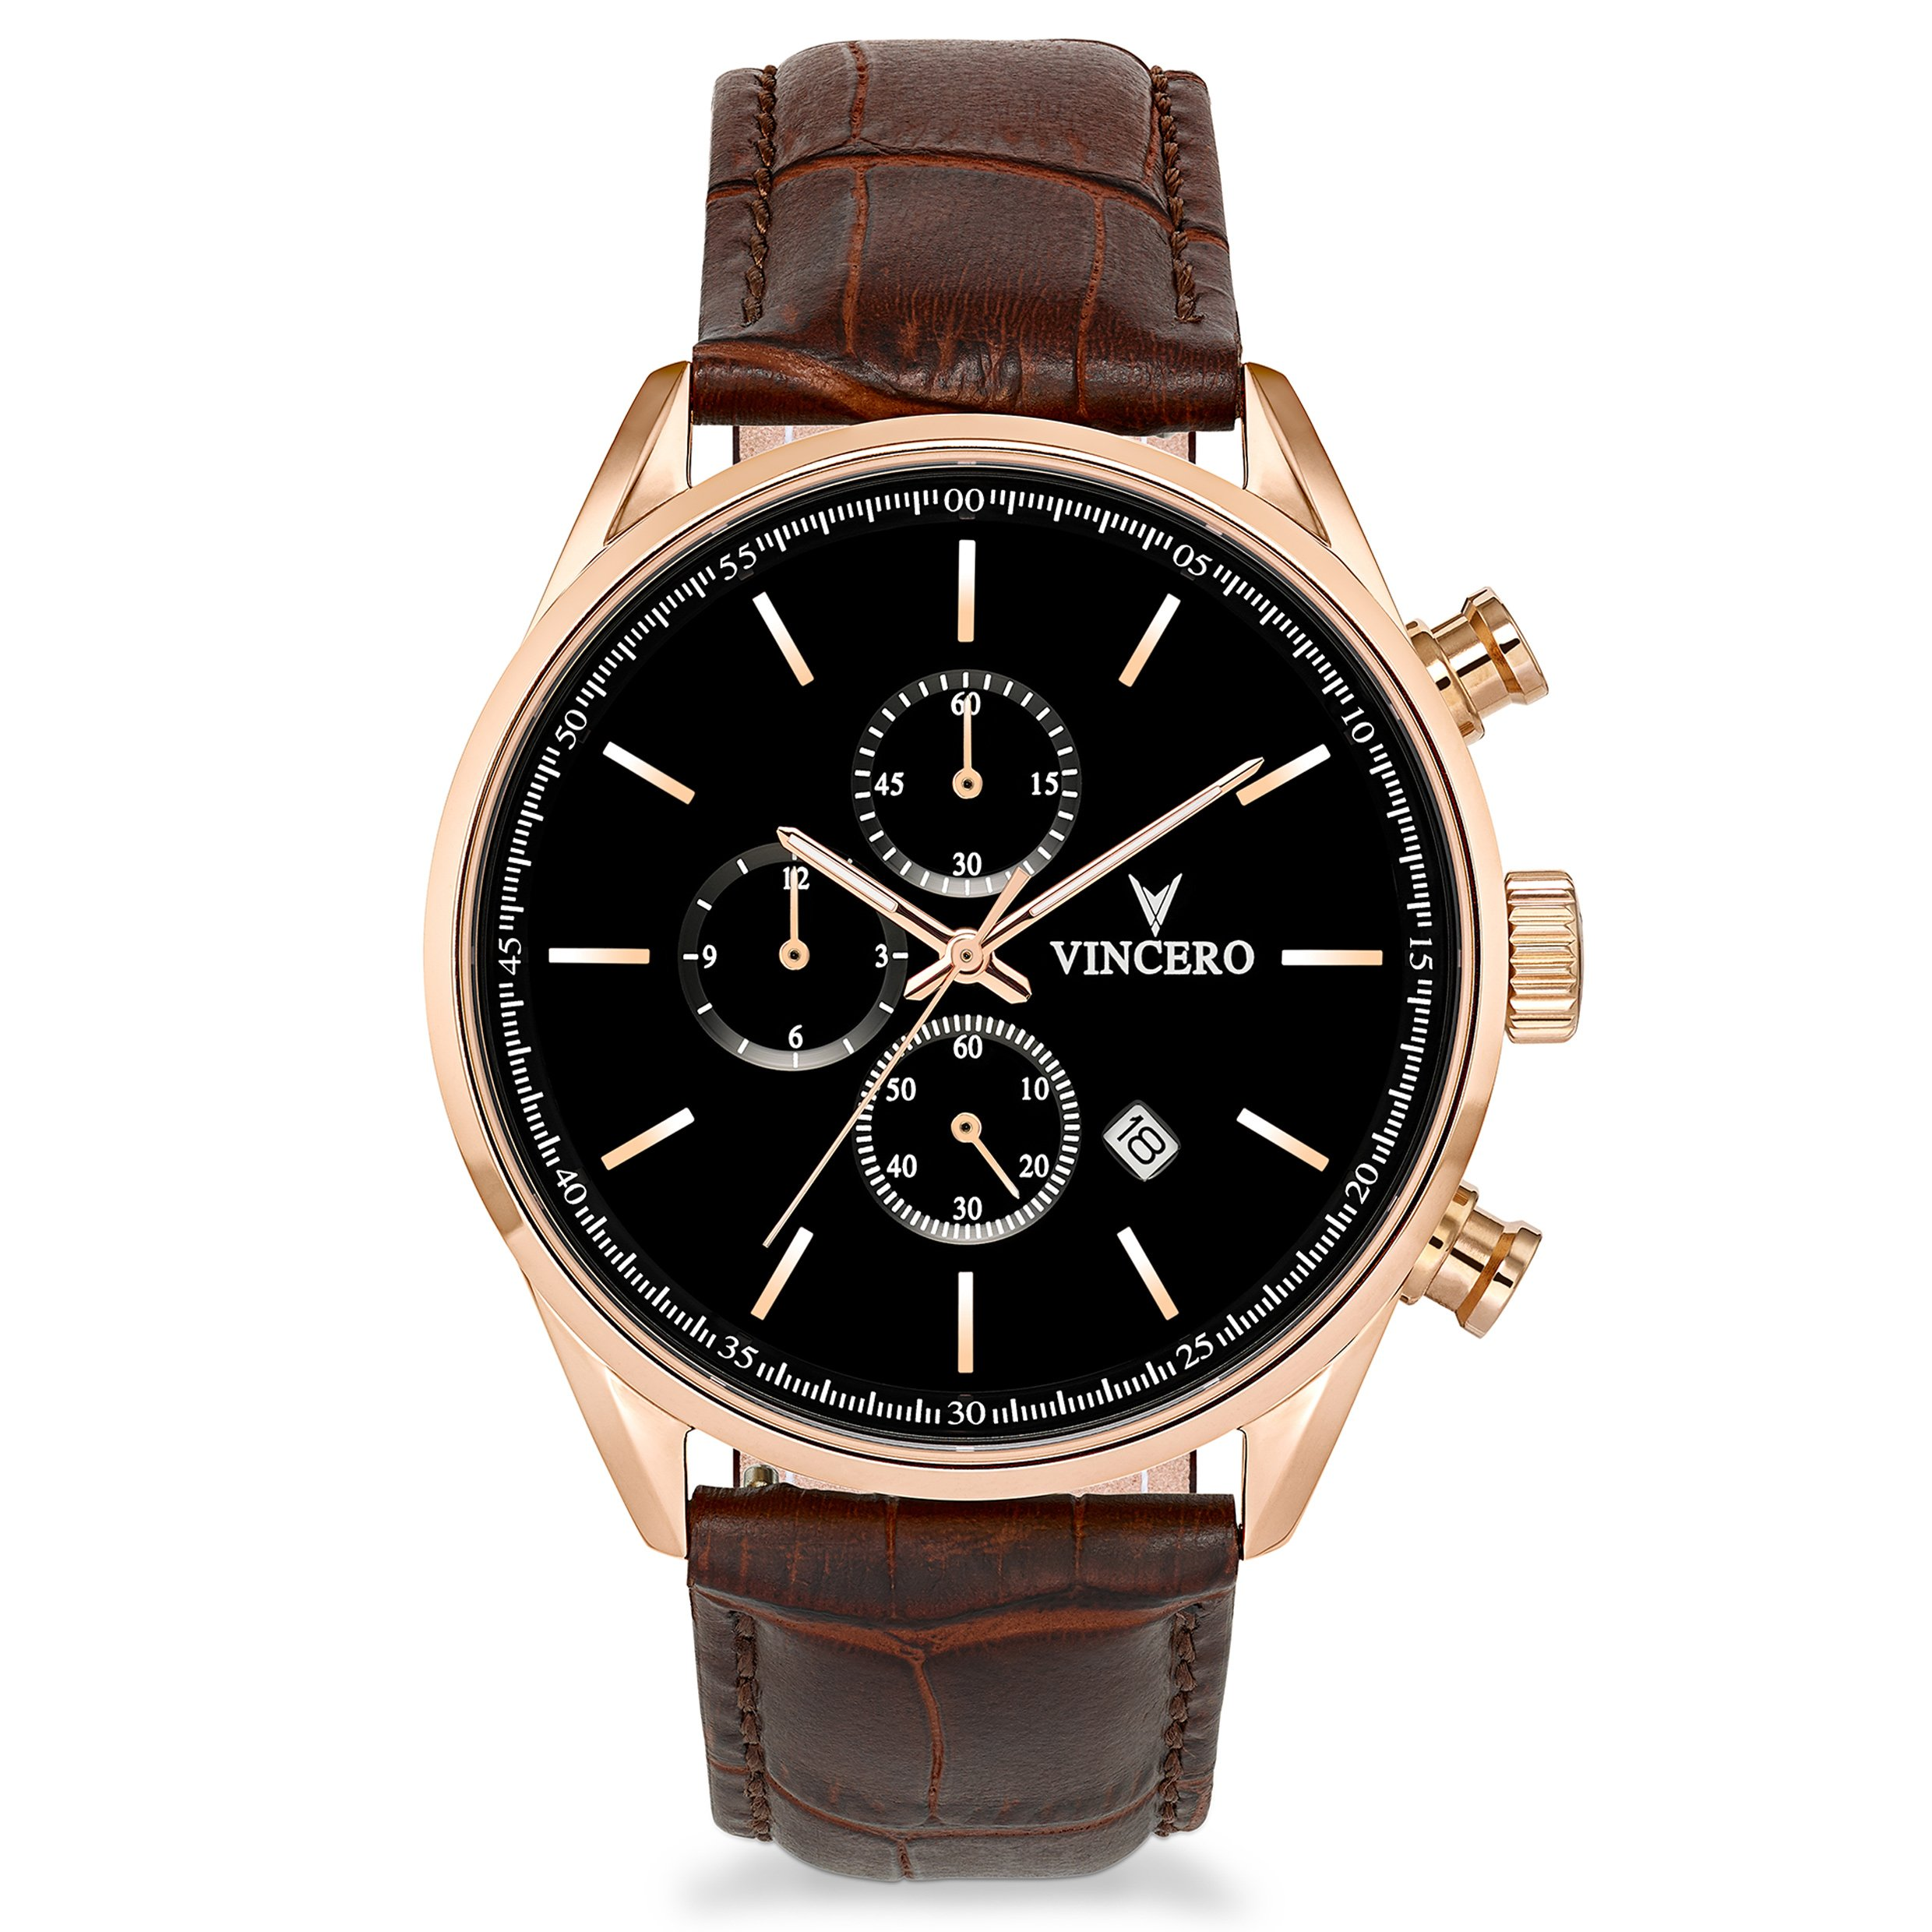 regal wear street wrist timely watches student and gent apparel college high